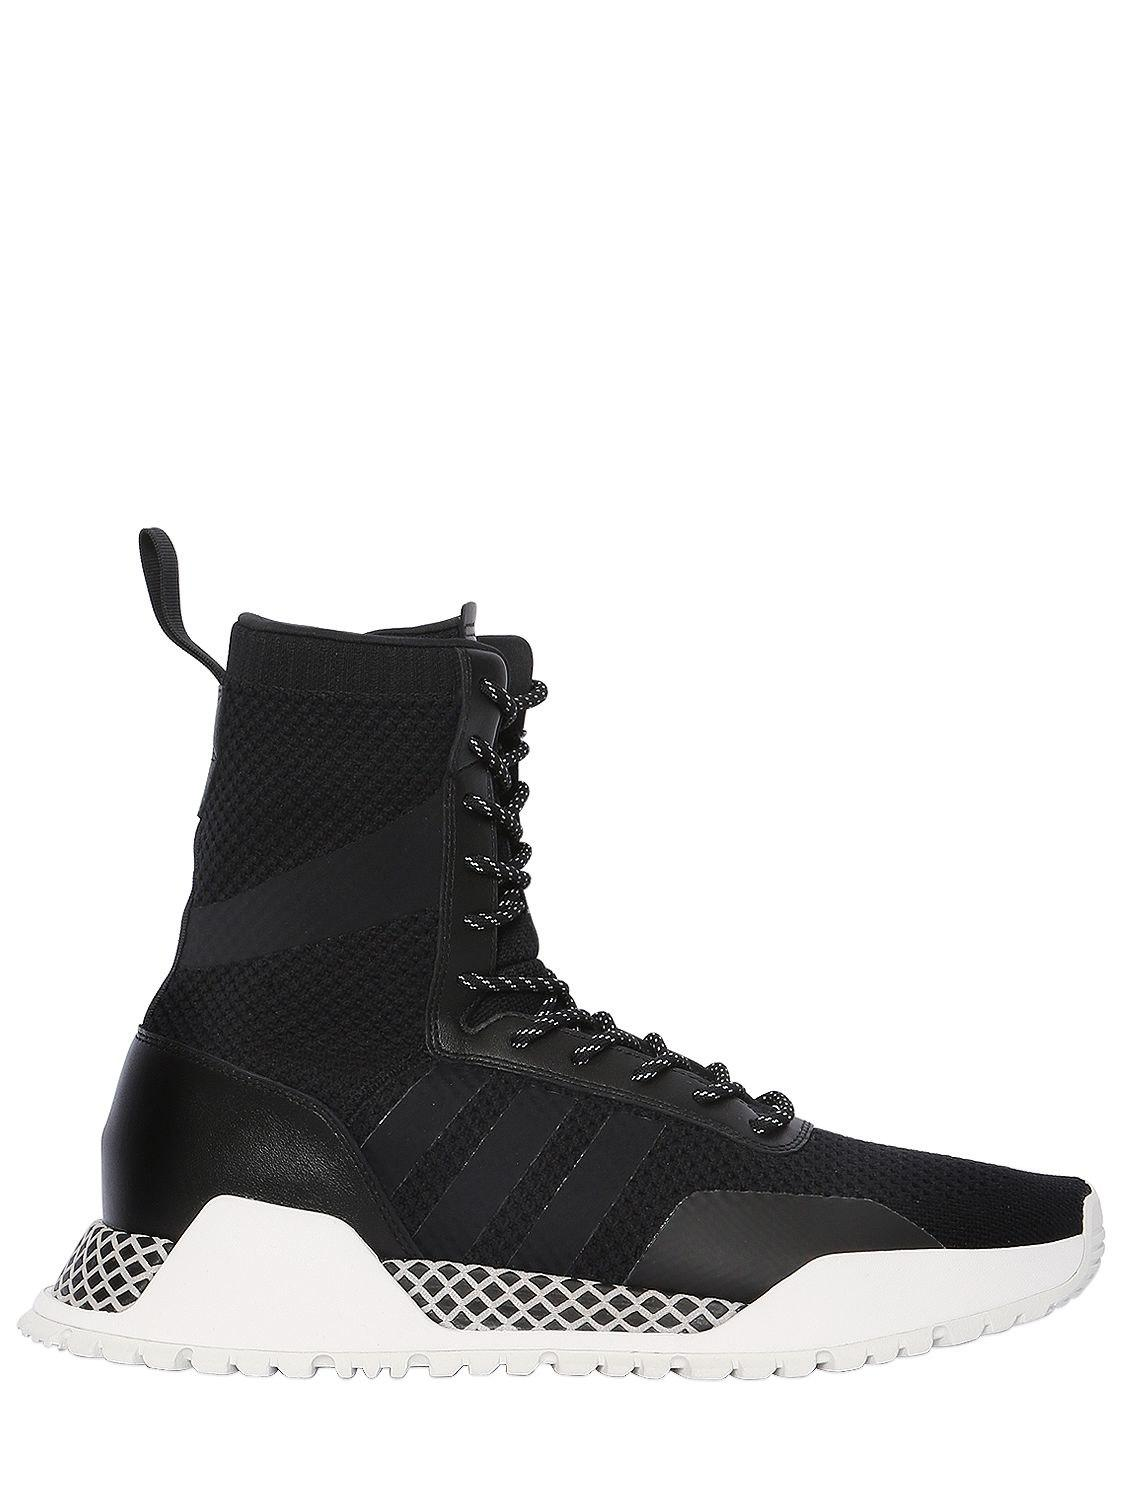 Men Sneaker In A Lyst Boots 3 f1 Adventure For Originals Black Adidas XSqZvv